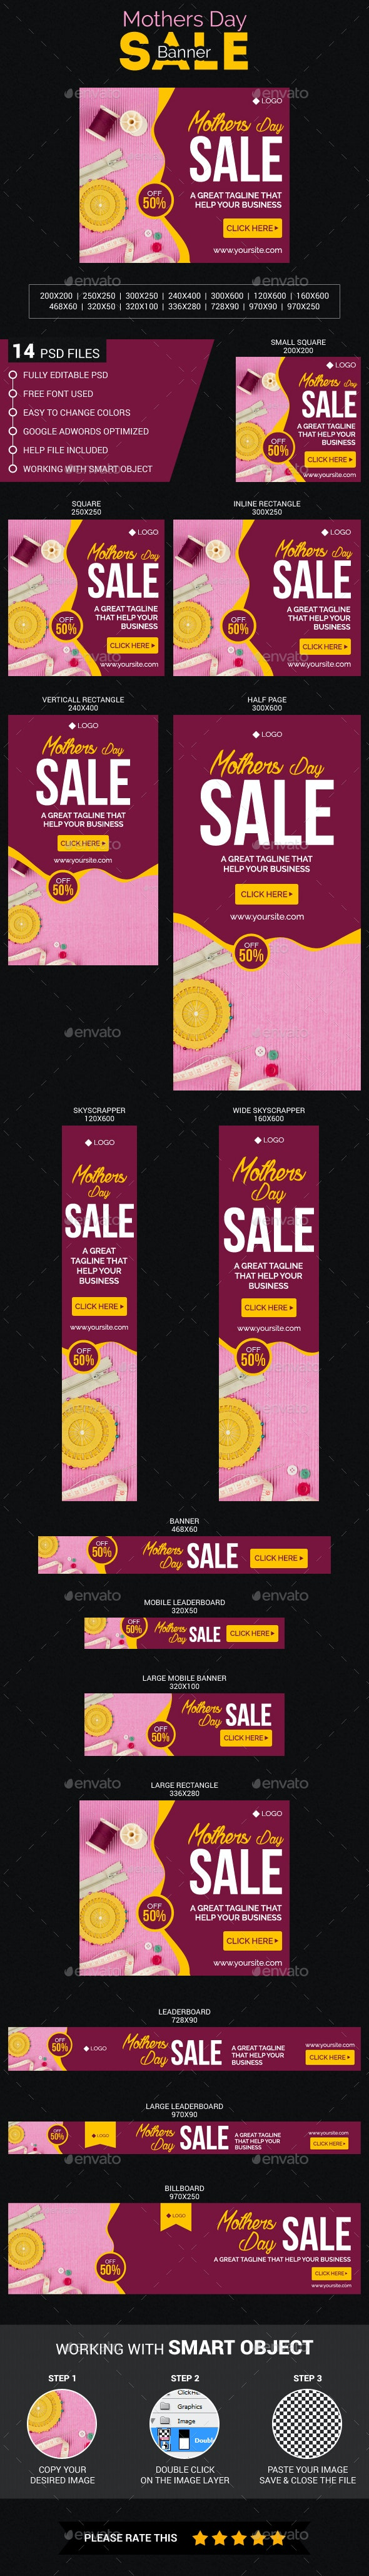 Mothers Day Sale - Banners & Ads Web Elements